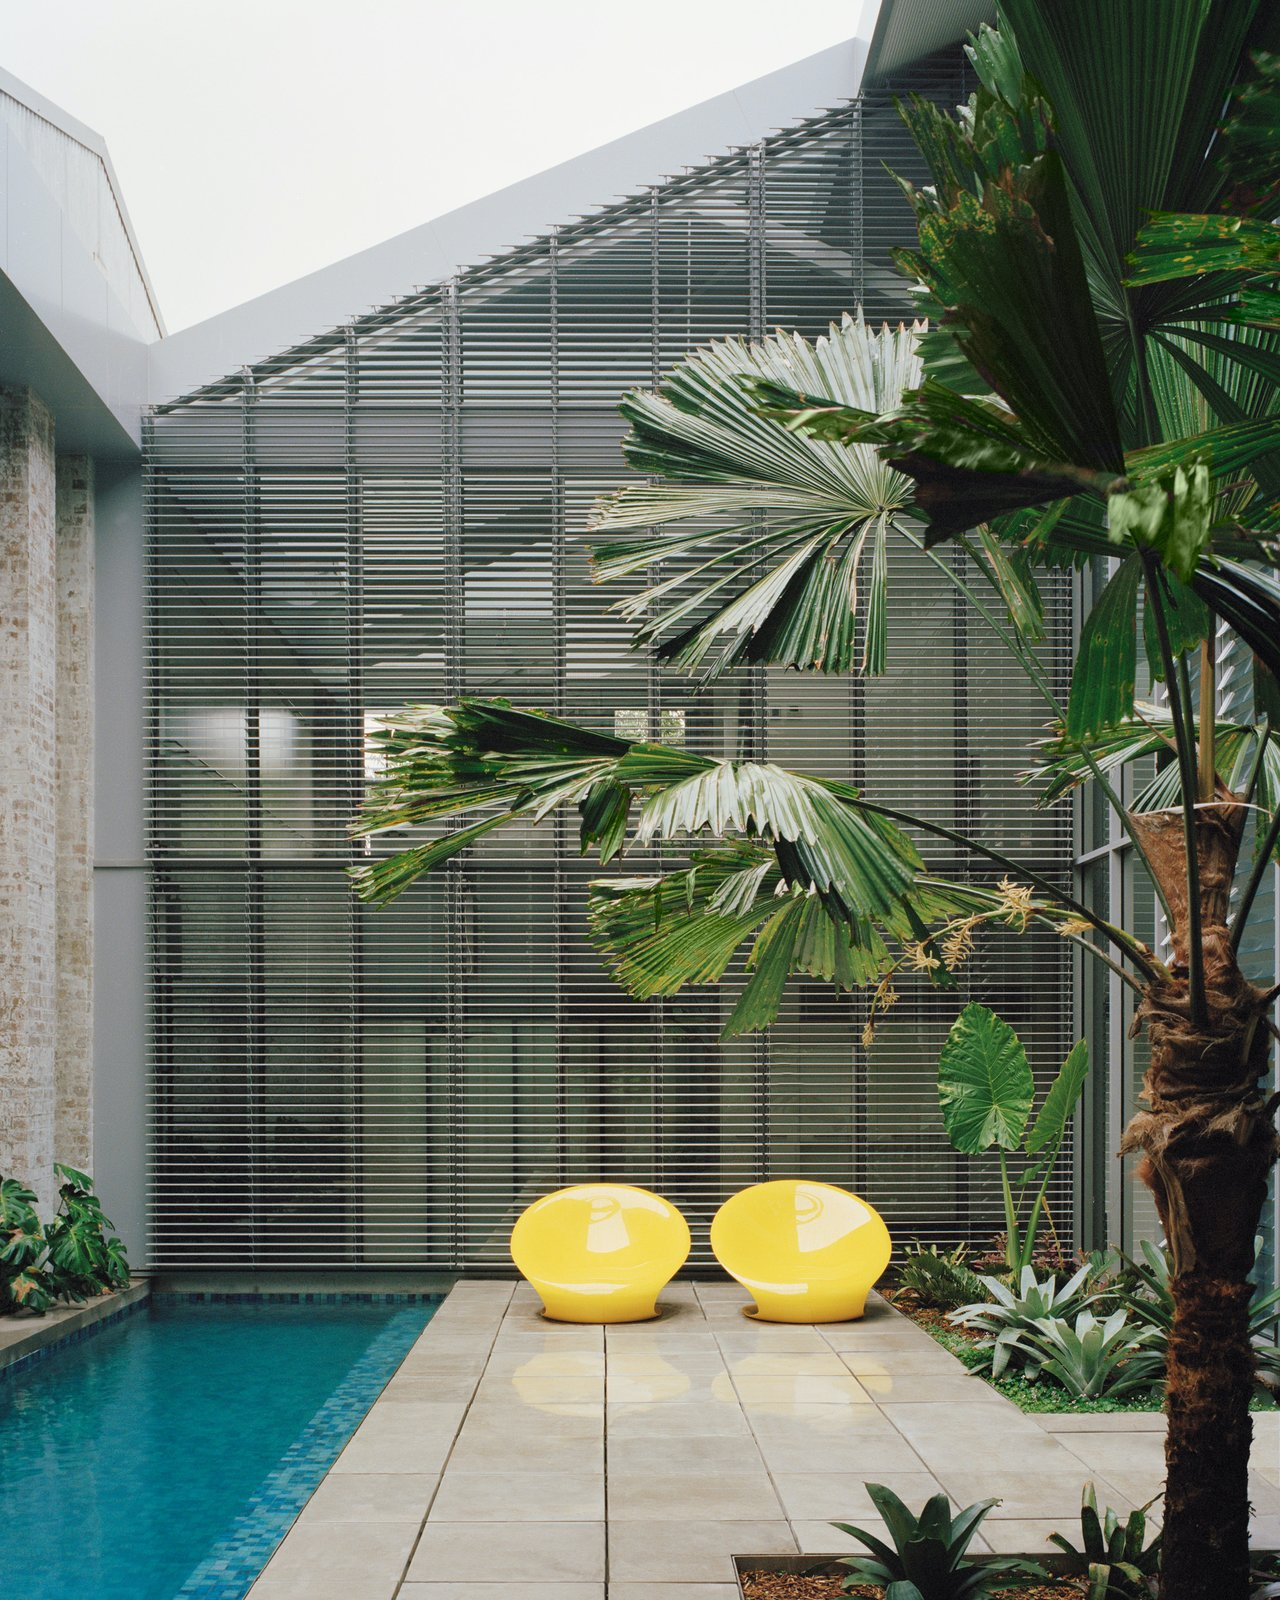 Pool area at Redfern Warehouse by Ian Moore Architects.